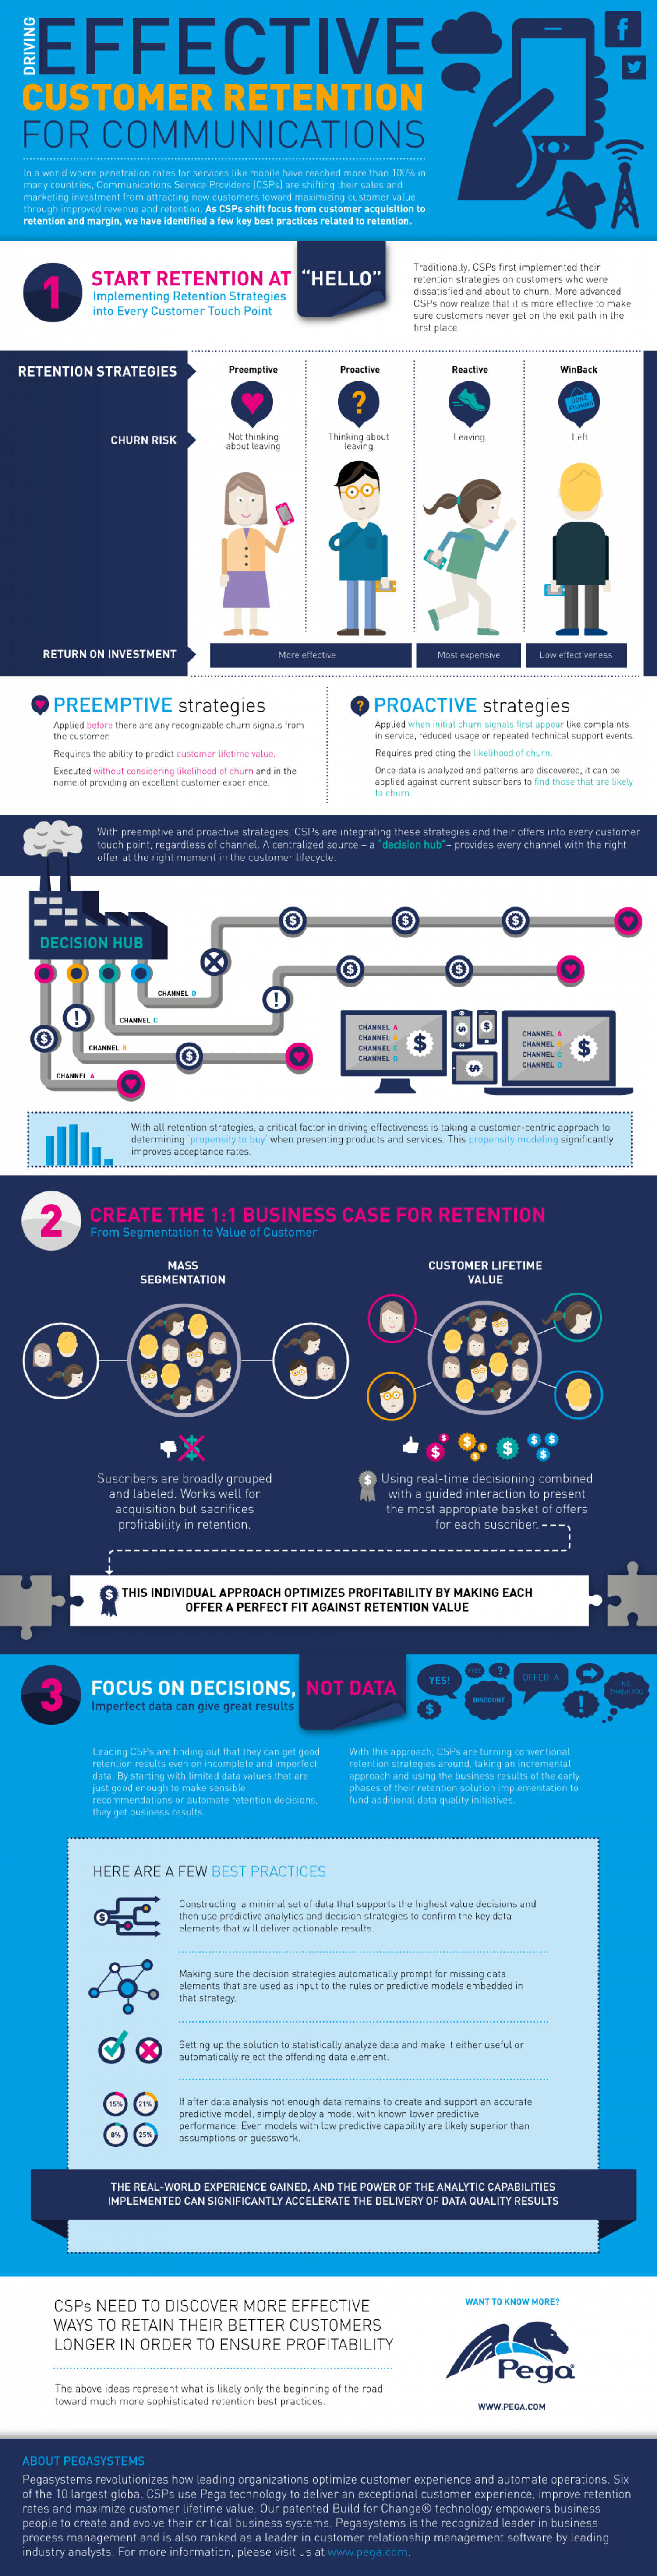 Driving effective customer retention for communications Infographic